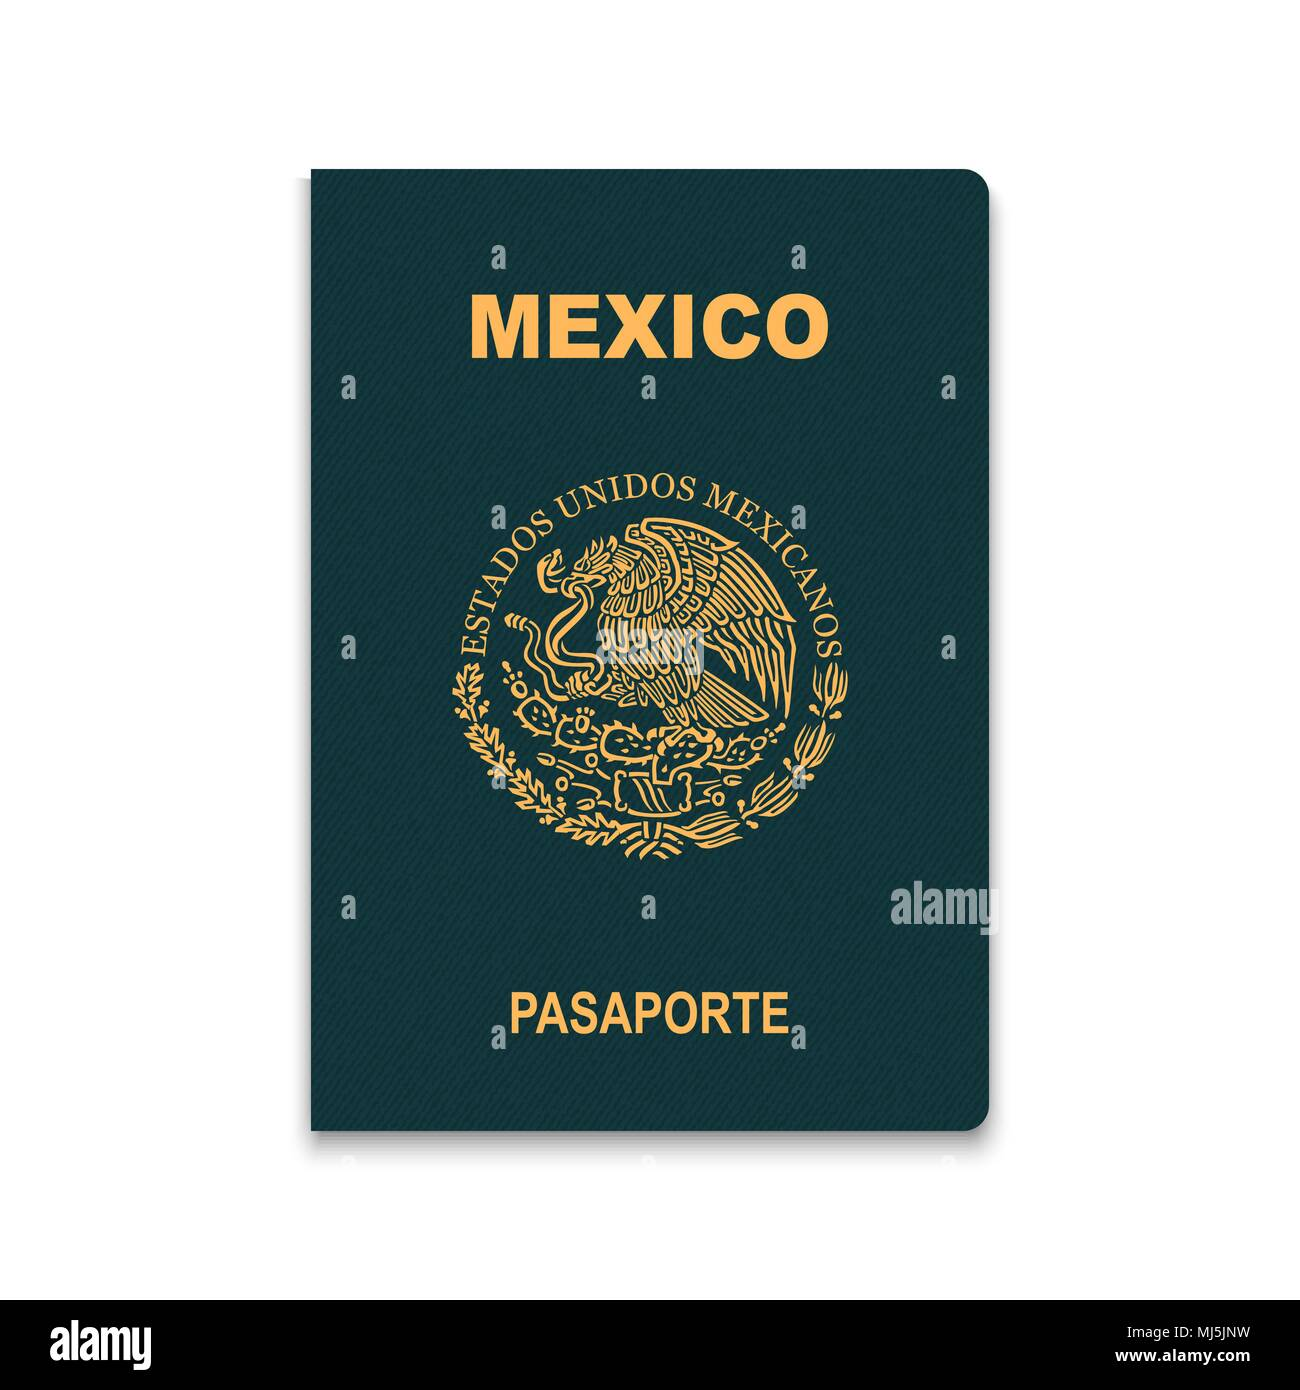 Passport of Mexico. Vector illustration - Stock Image